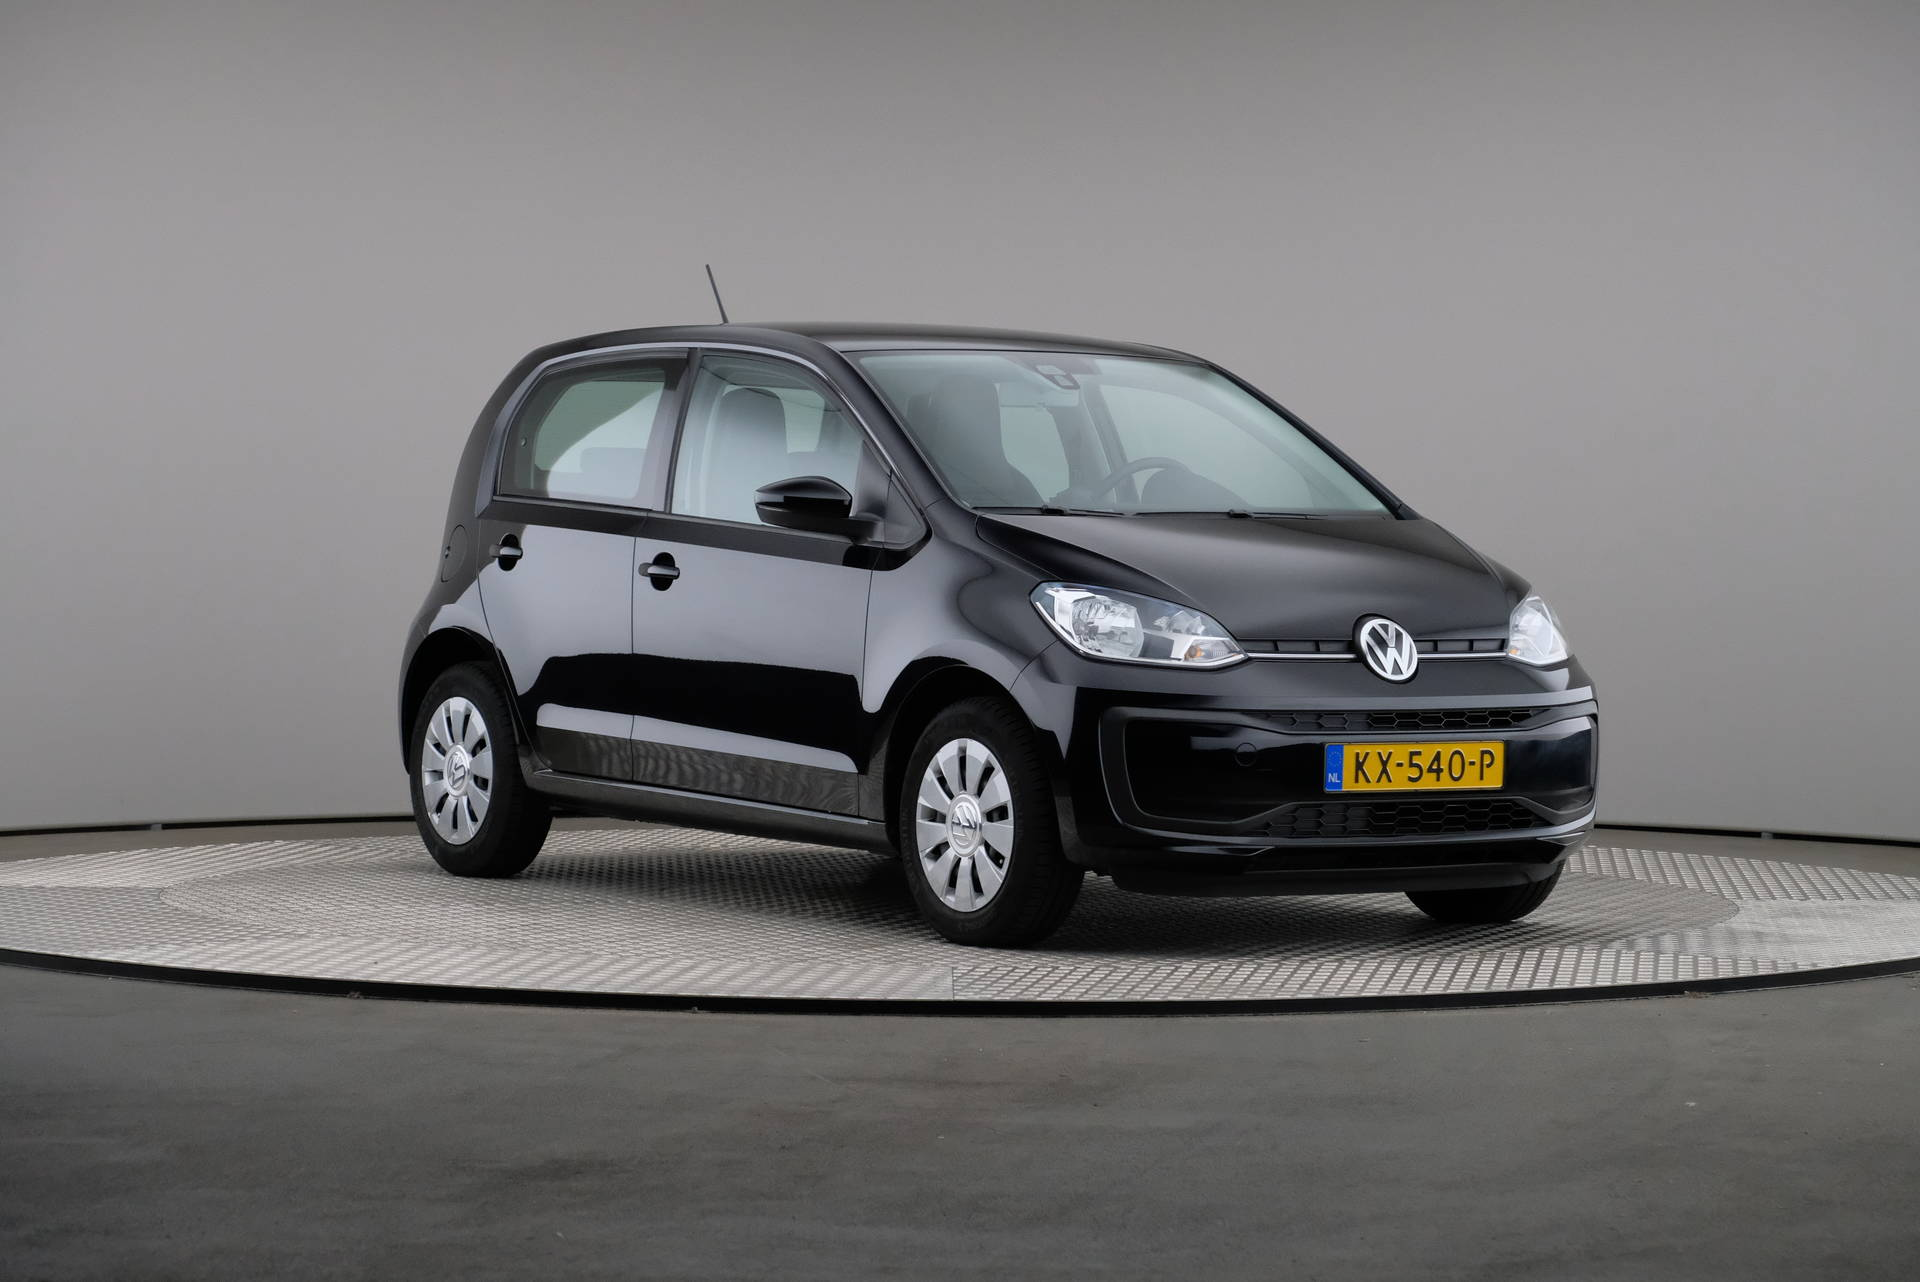 Volkswagen up! 1.0 44kW Move up! BlueMotion Technology, Airconditioning, 360-image29